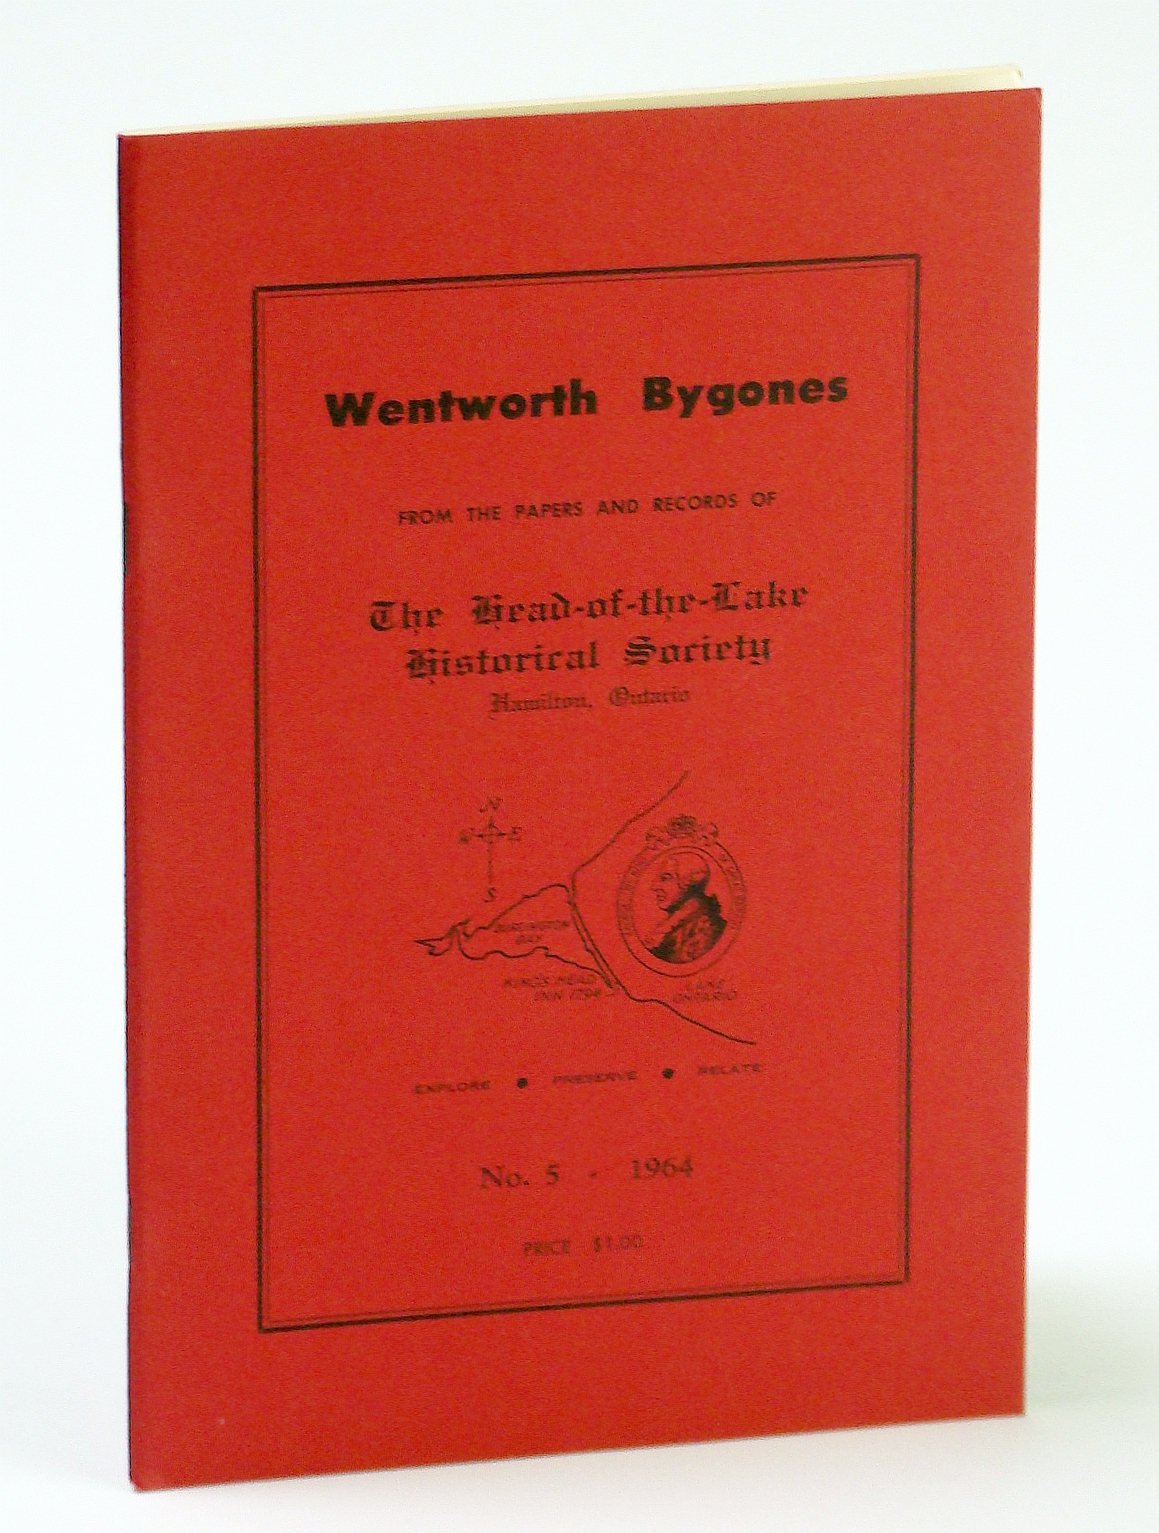 Image for Wentworth Bygones: From the Papers and Records of The Head-of-the-Lake Historical Society, No. 5 (Five) 1964